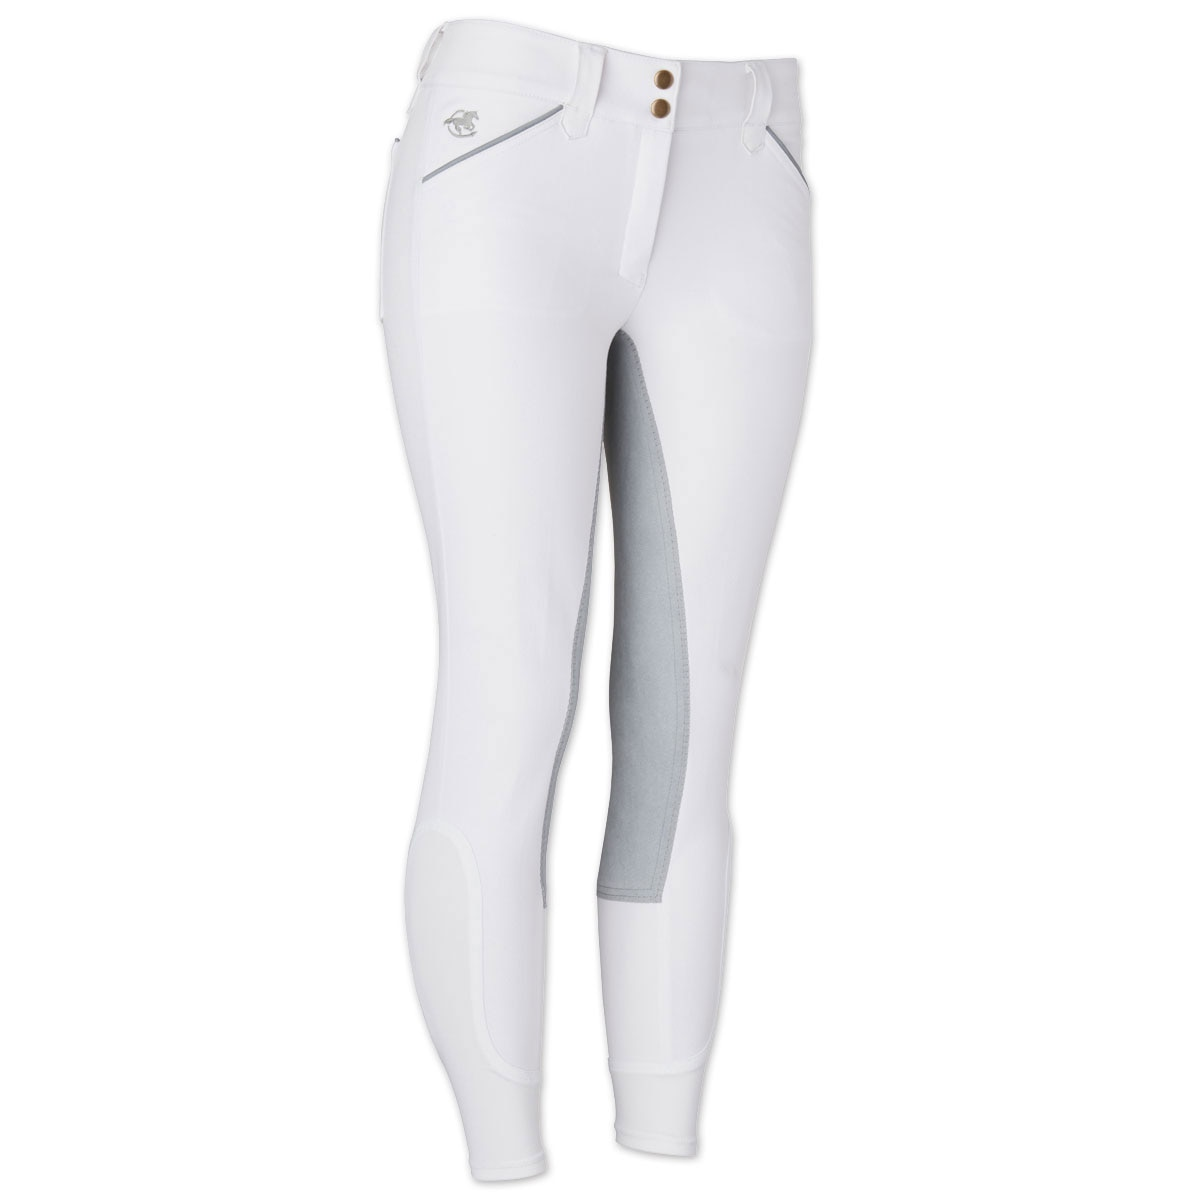 Piper Breeches by SmartPak - Original Full Seat